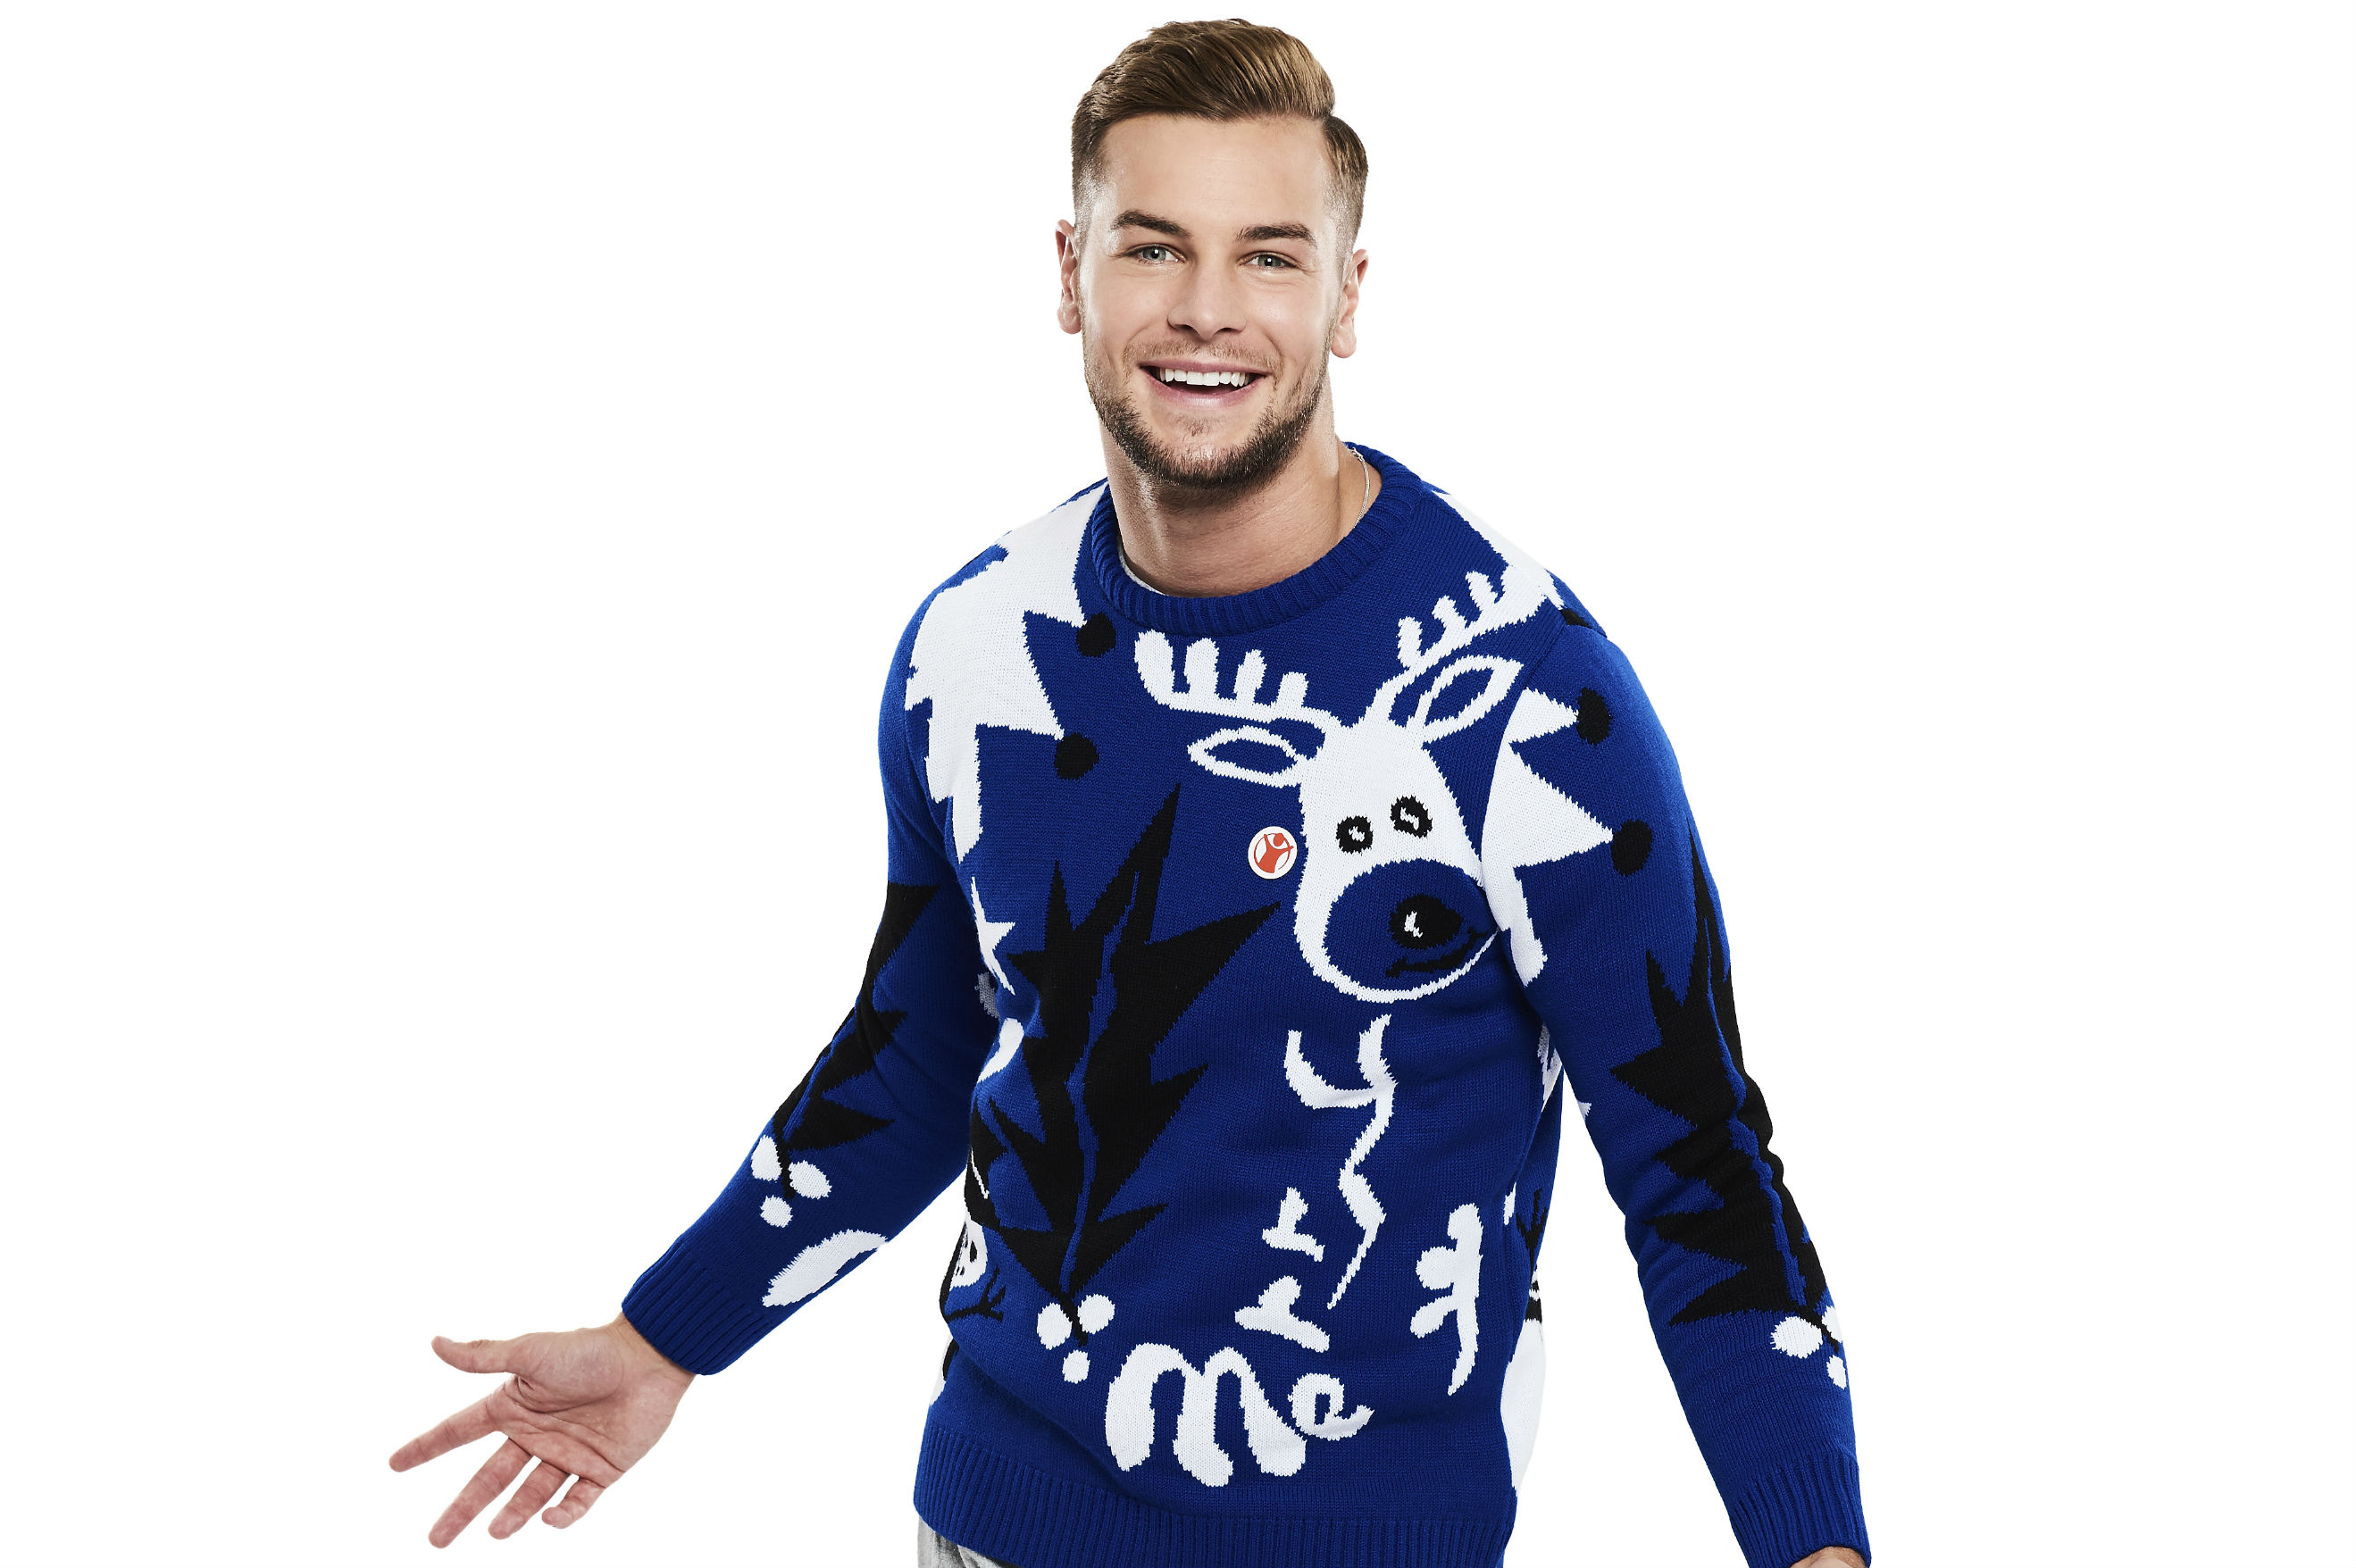 Chris Hughes, from Love Island, wears his festive Christmas Jumper for Save the Children